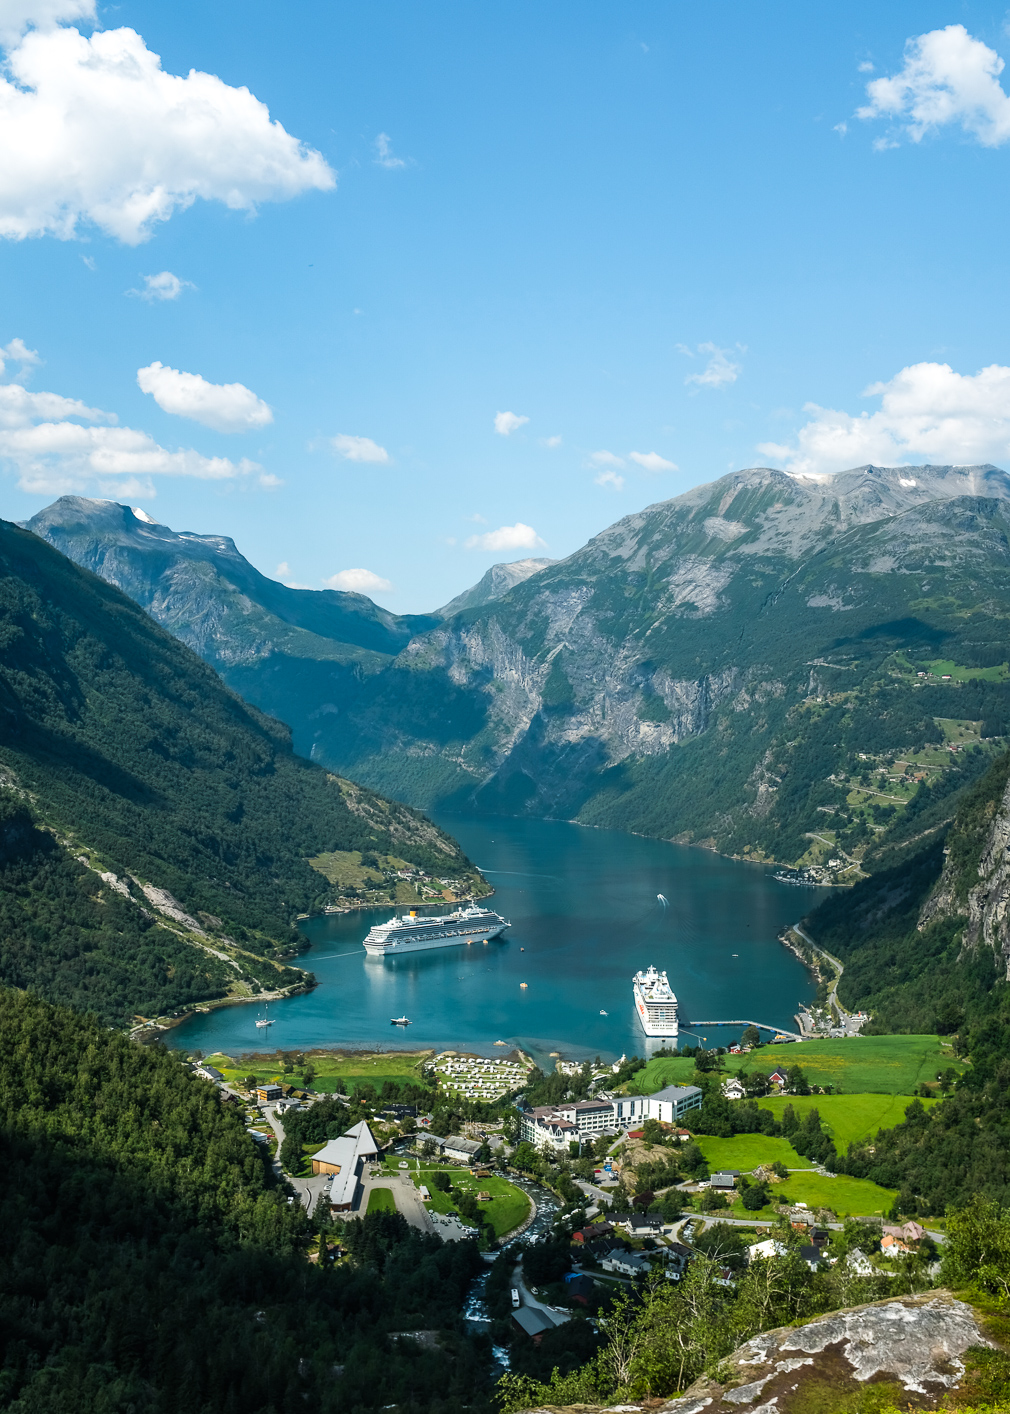 View of the famous Geirangerfjord in Norway